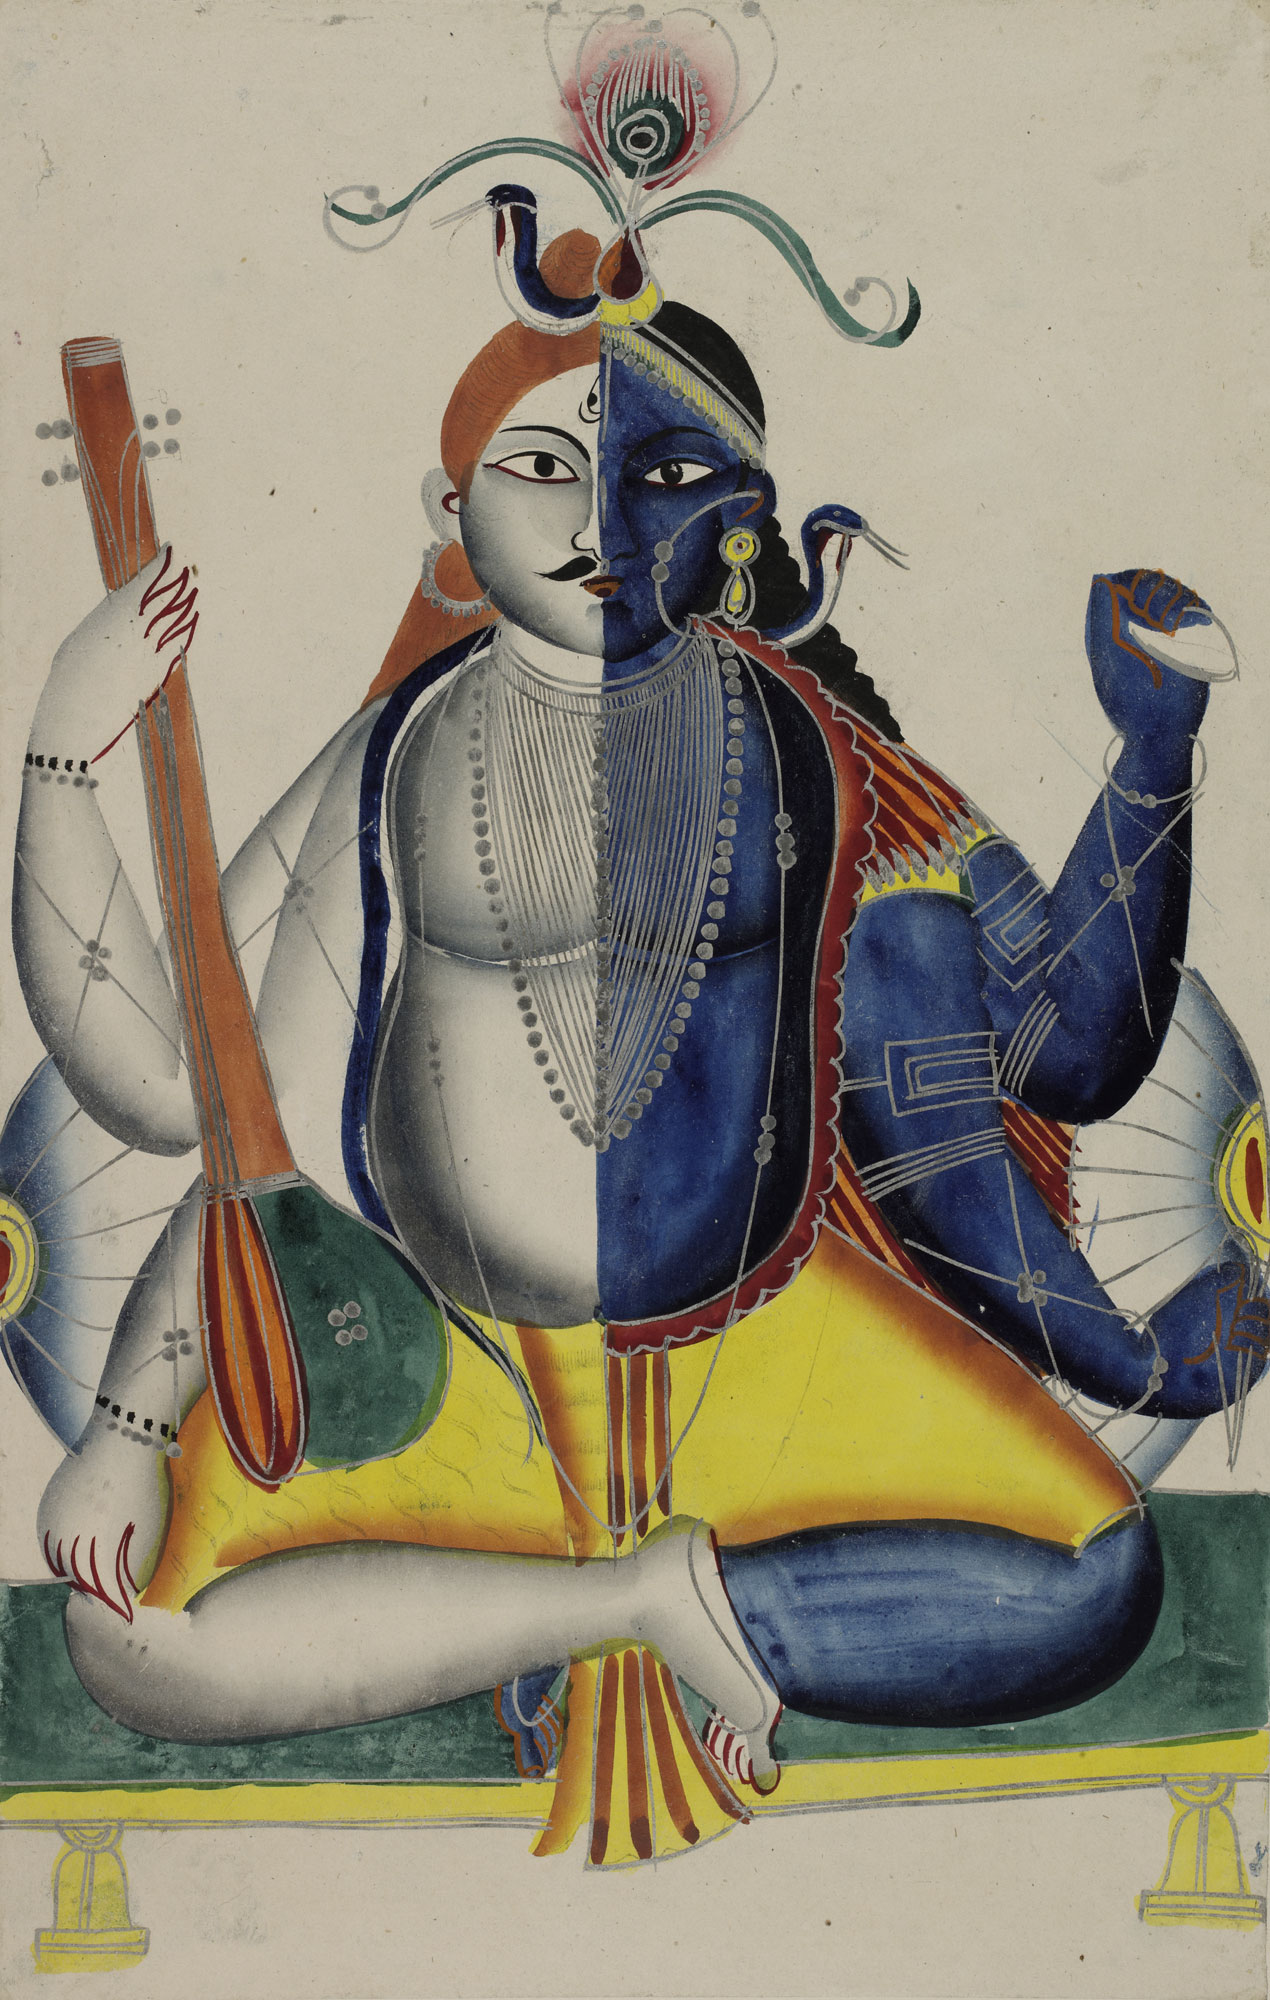 Vishnu and Shiva combined as Hari Hara